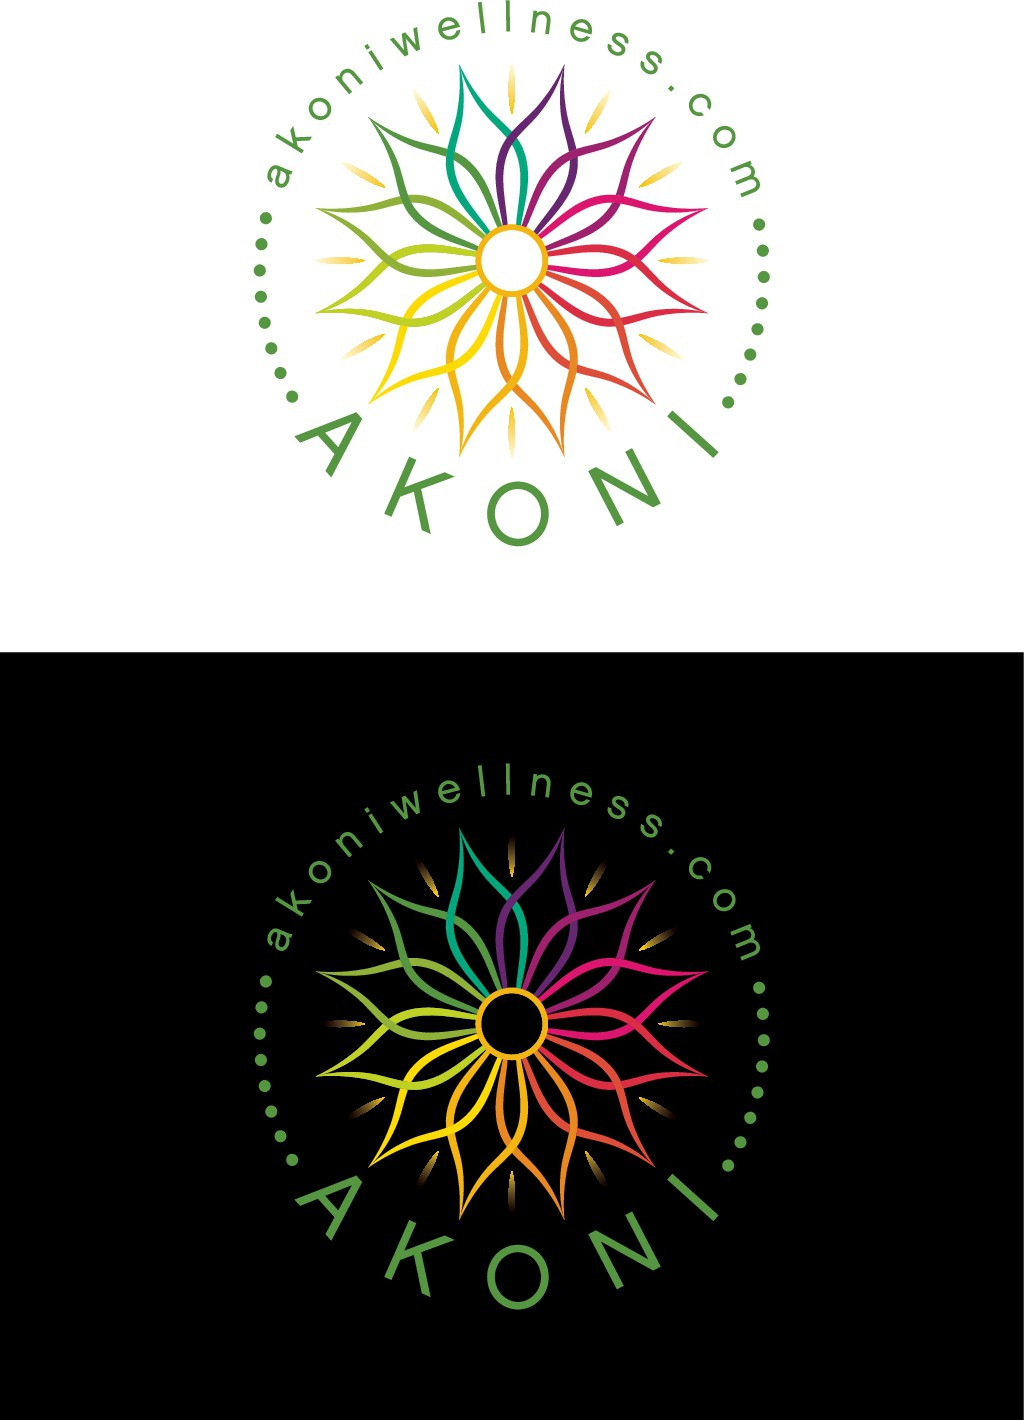 Wellness Clinic on Maui is looking for an upbeat and fun logo-design